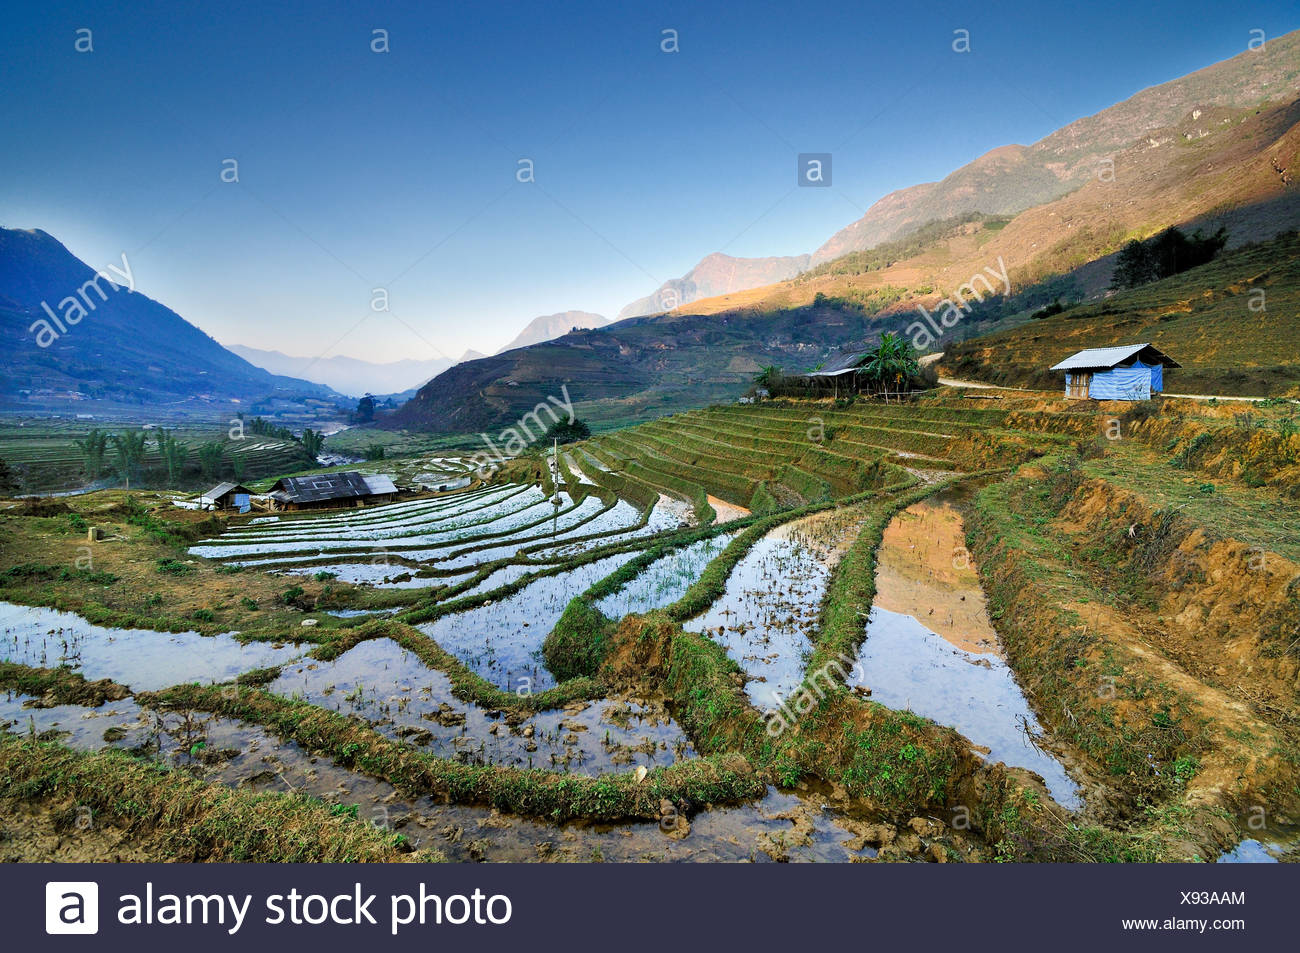 Irrigated rice terraces, rice paddies in Sapa or Sa Pa, Lao Cai province, northern Vietnam, Vietnam, Southeast Asia, Asia - Stock Image